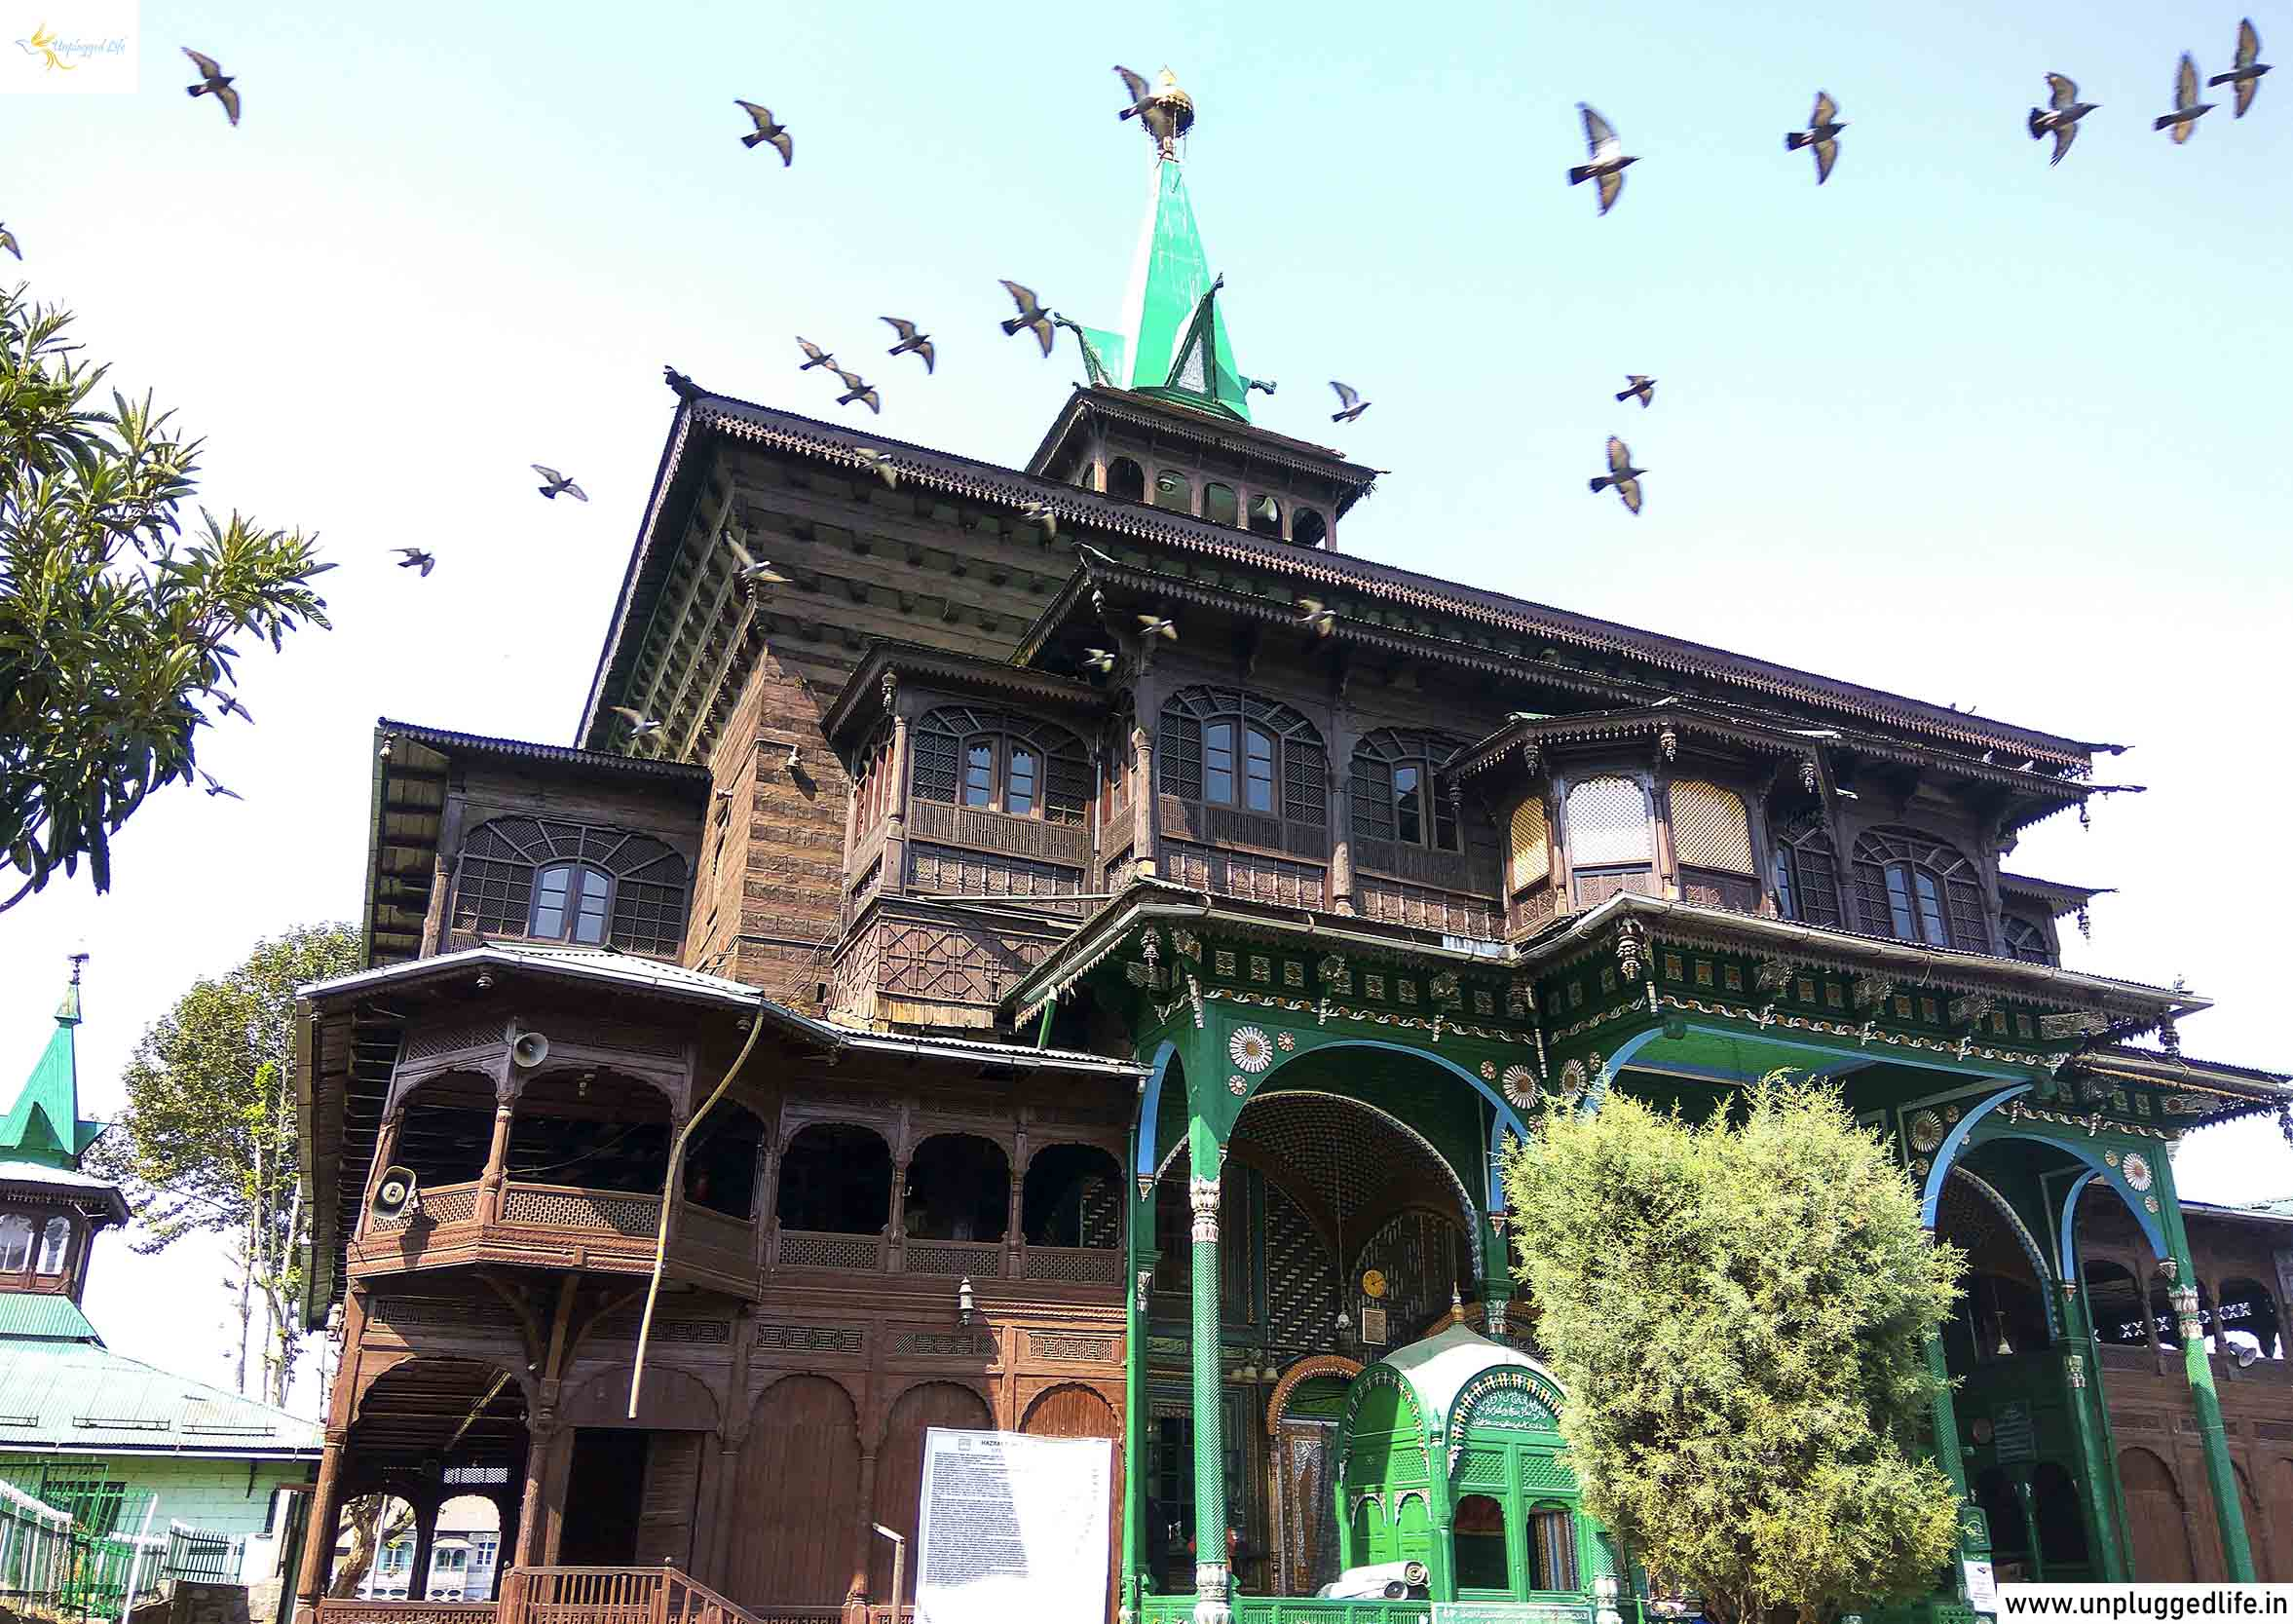 Khanqah-e-Moula, Ladakh, Unplugged Life, Srinagar to Leh, Explore Srinagar, Discover Srinagar, Top things to do in Srinagar, Shikara Ride, Shikara in Srinagar, top sights in Srinagar, Kashmir, Kashmir India, Jammu and Kashmir, Sightseeing in Srinagar, Boat ride, things to do in Kashmir, Things to do in Srinagar, Things to do in Jammu and Kashmir, happy feet, GoPro Photos, Relaxing, Srinagar to Leh by Road, Srinagar to Kargil by Road, Kargil to Leh by Road, Leh to Srinagar highway, Srinagar to Lamayuru, Srinagar to Leh Ladakh